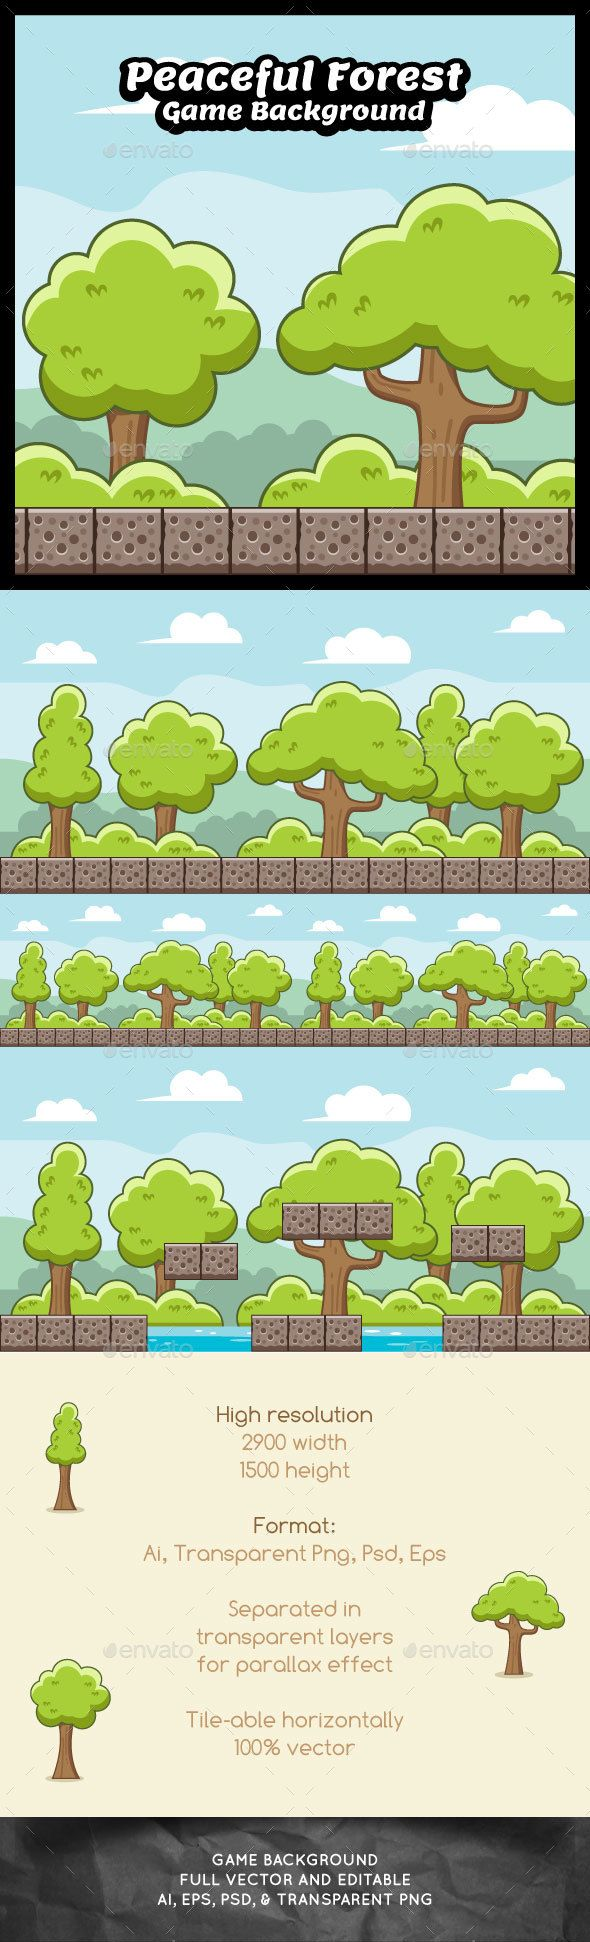 Peaceful Forest Game Background (Backgrounds)